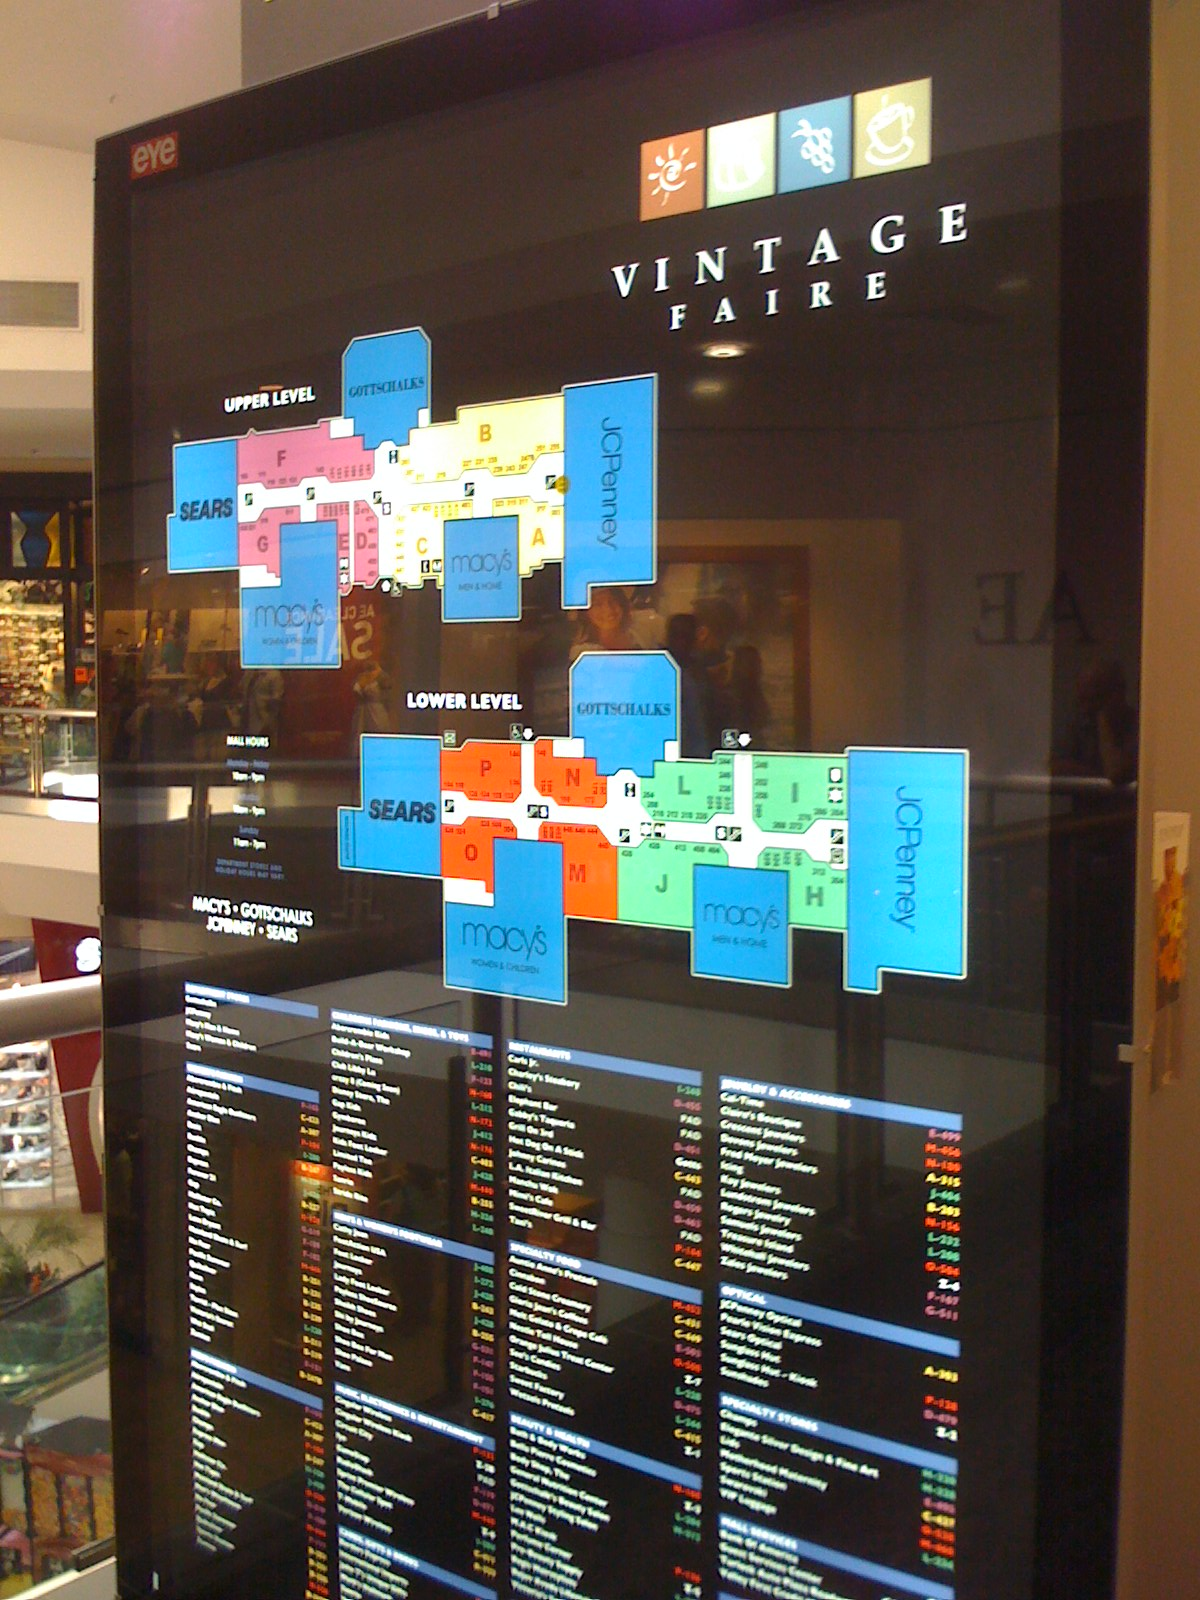 Stores In Vintage Faire Mall 68